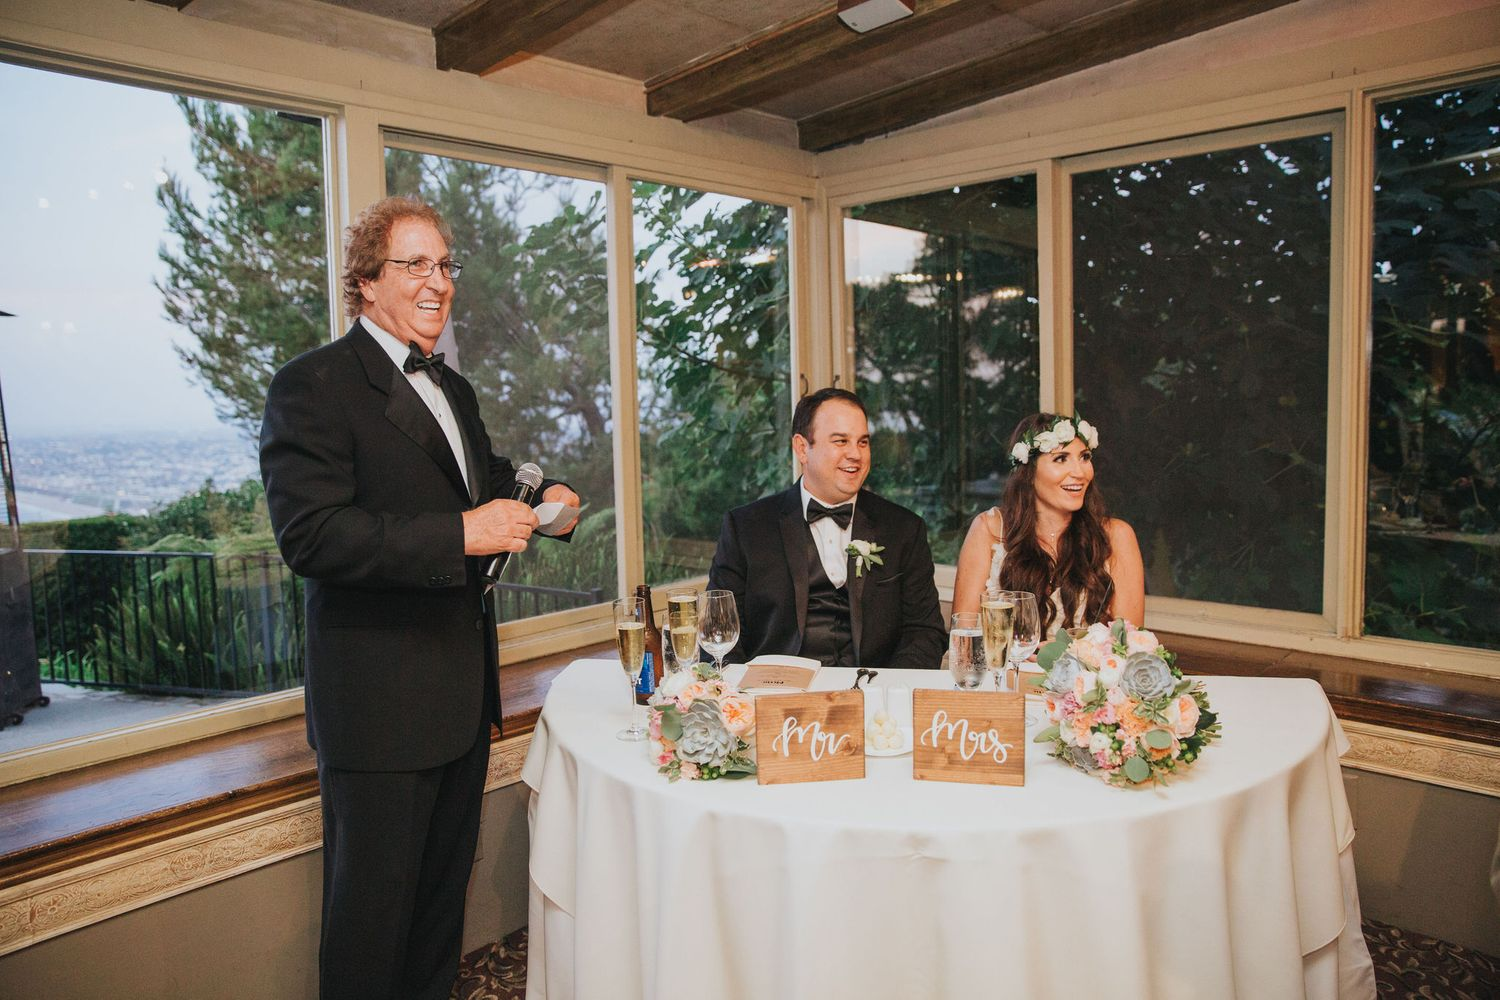 wedding toasts at la venta inn